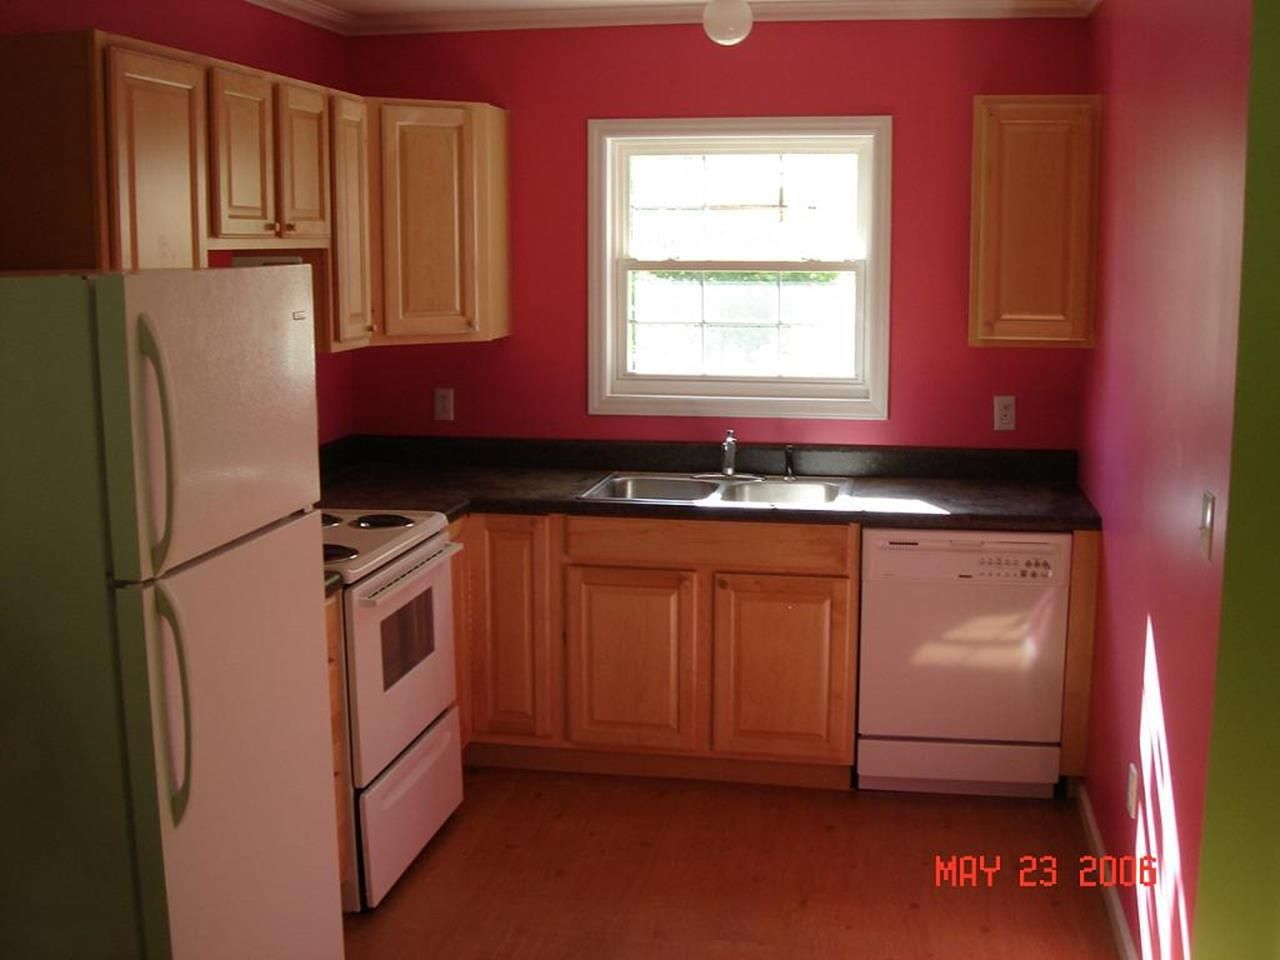 34 low budget ideas very small kitchen remodel design